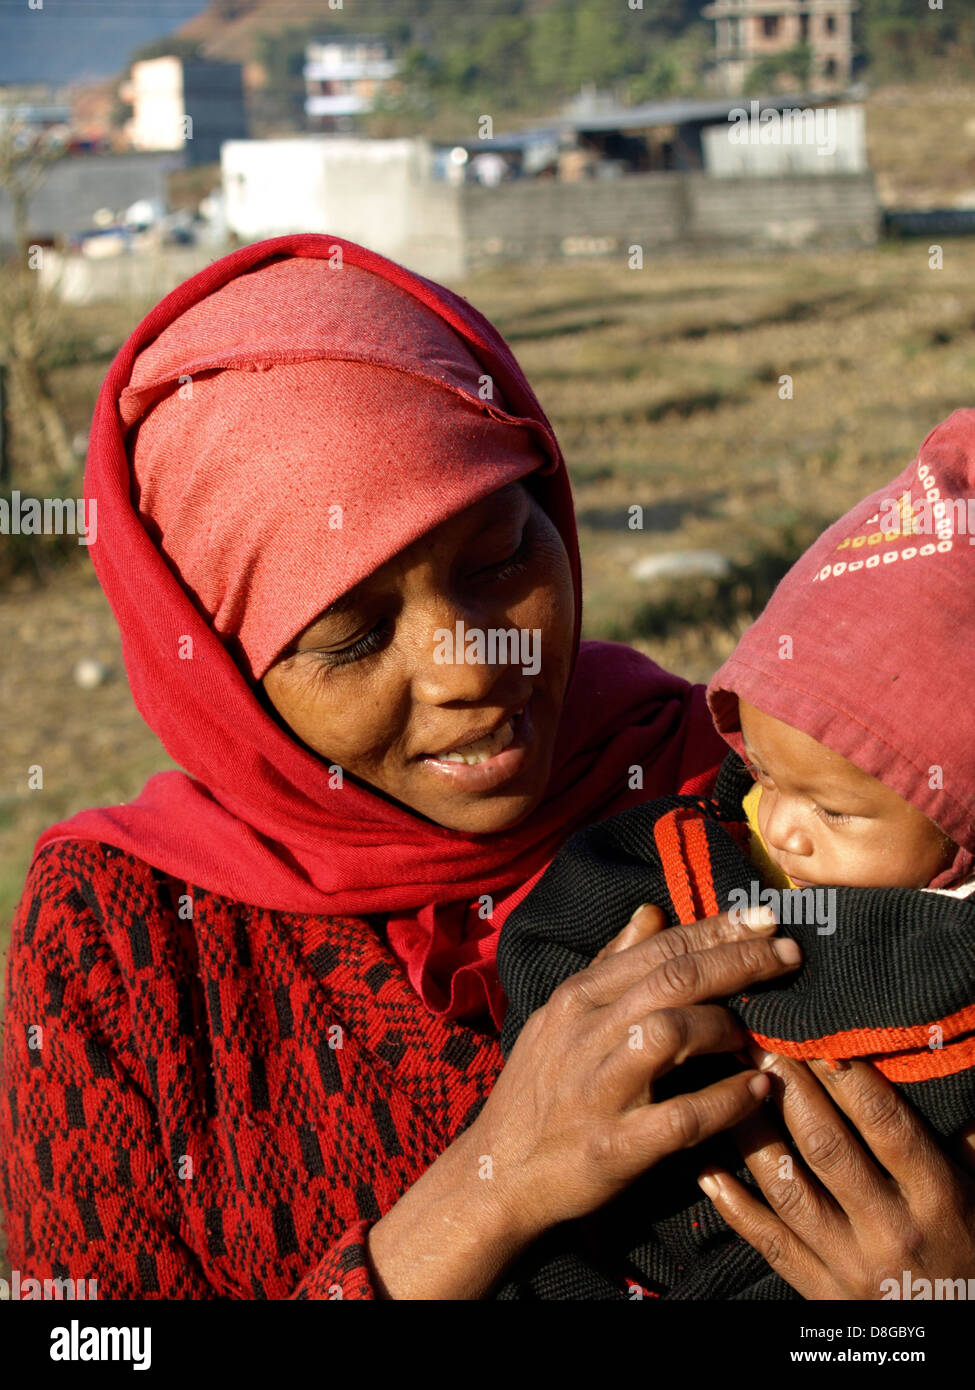 Nepalese mother and baby stock photos nepalese mother and baby nepal family amother in nepal nepalese people a portrait could be used as ccuart Gallery